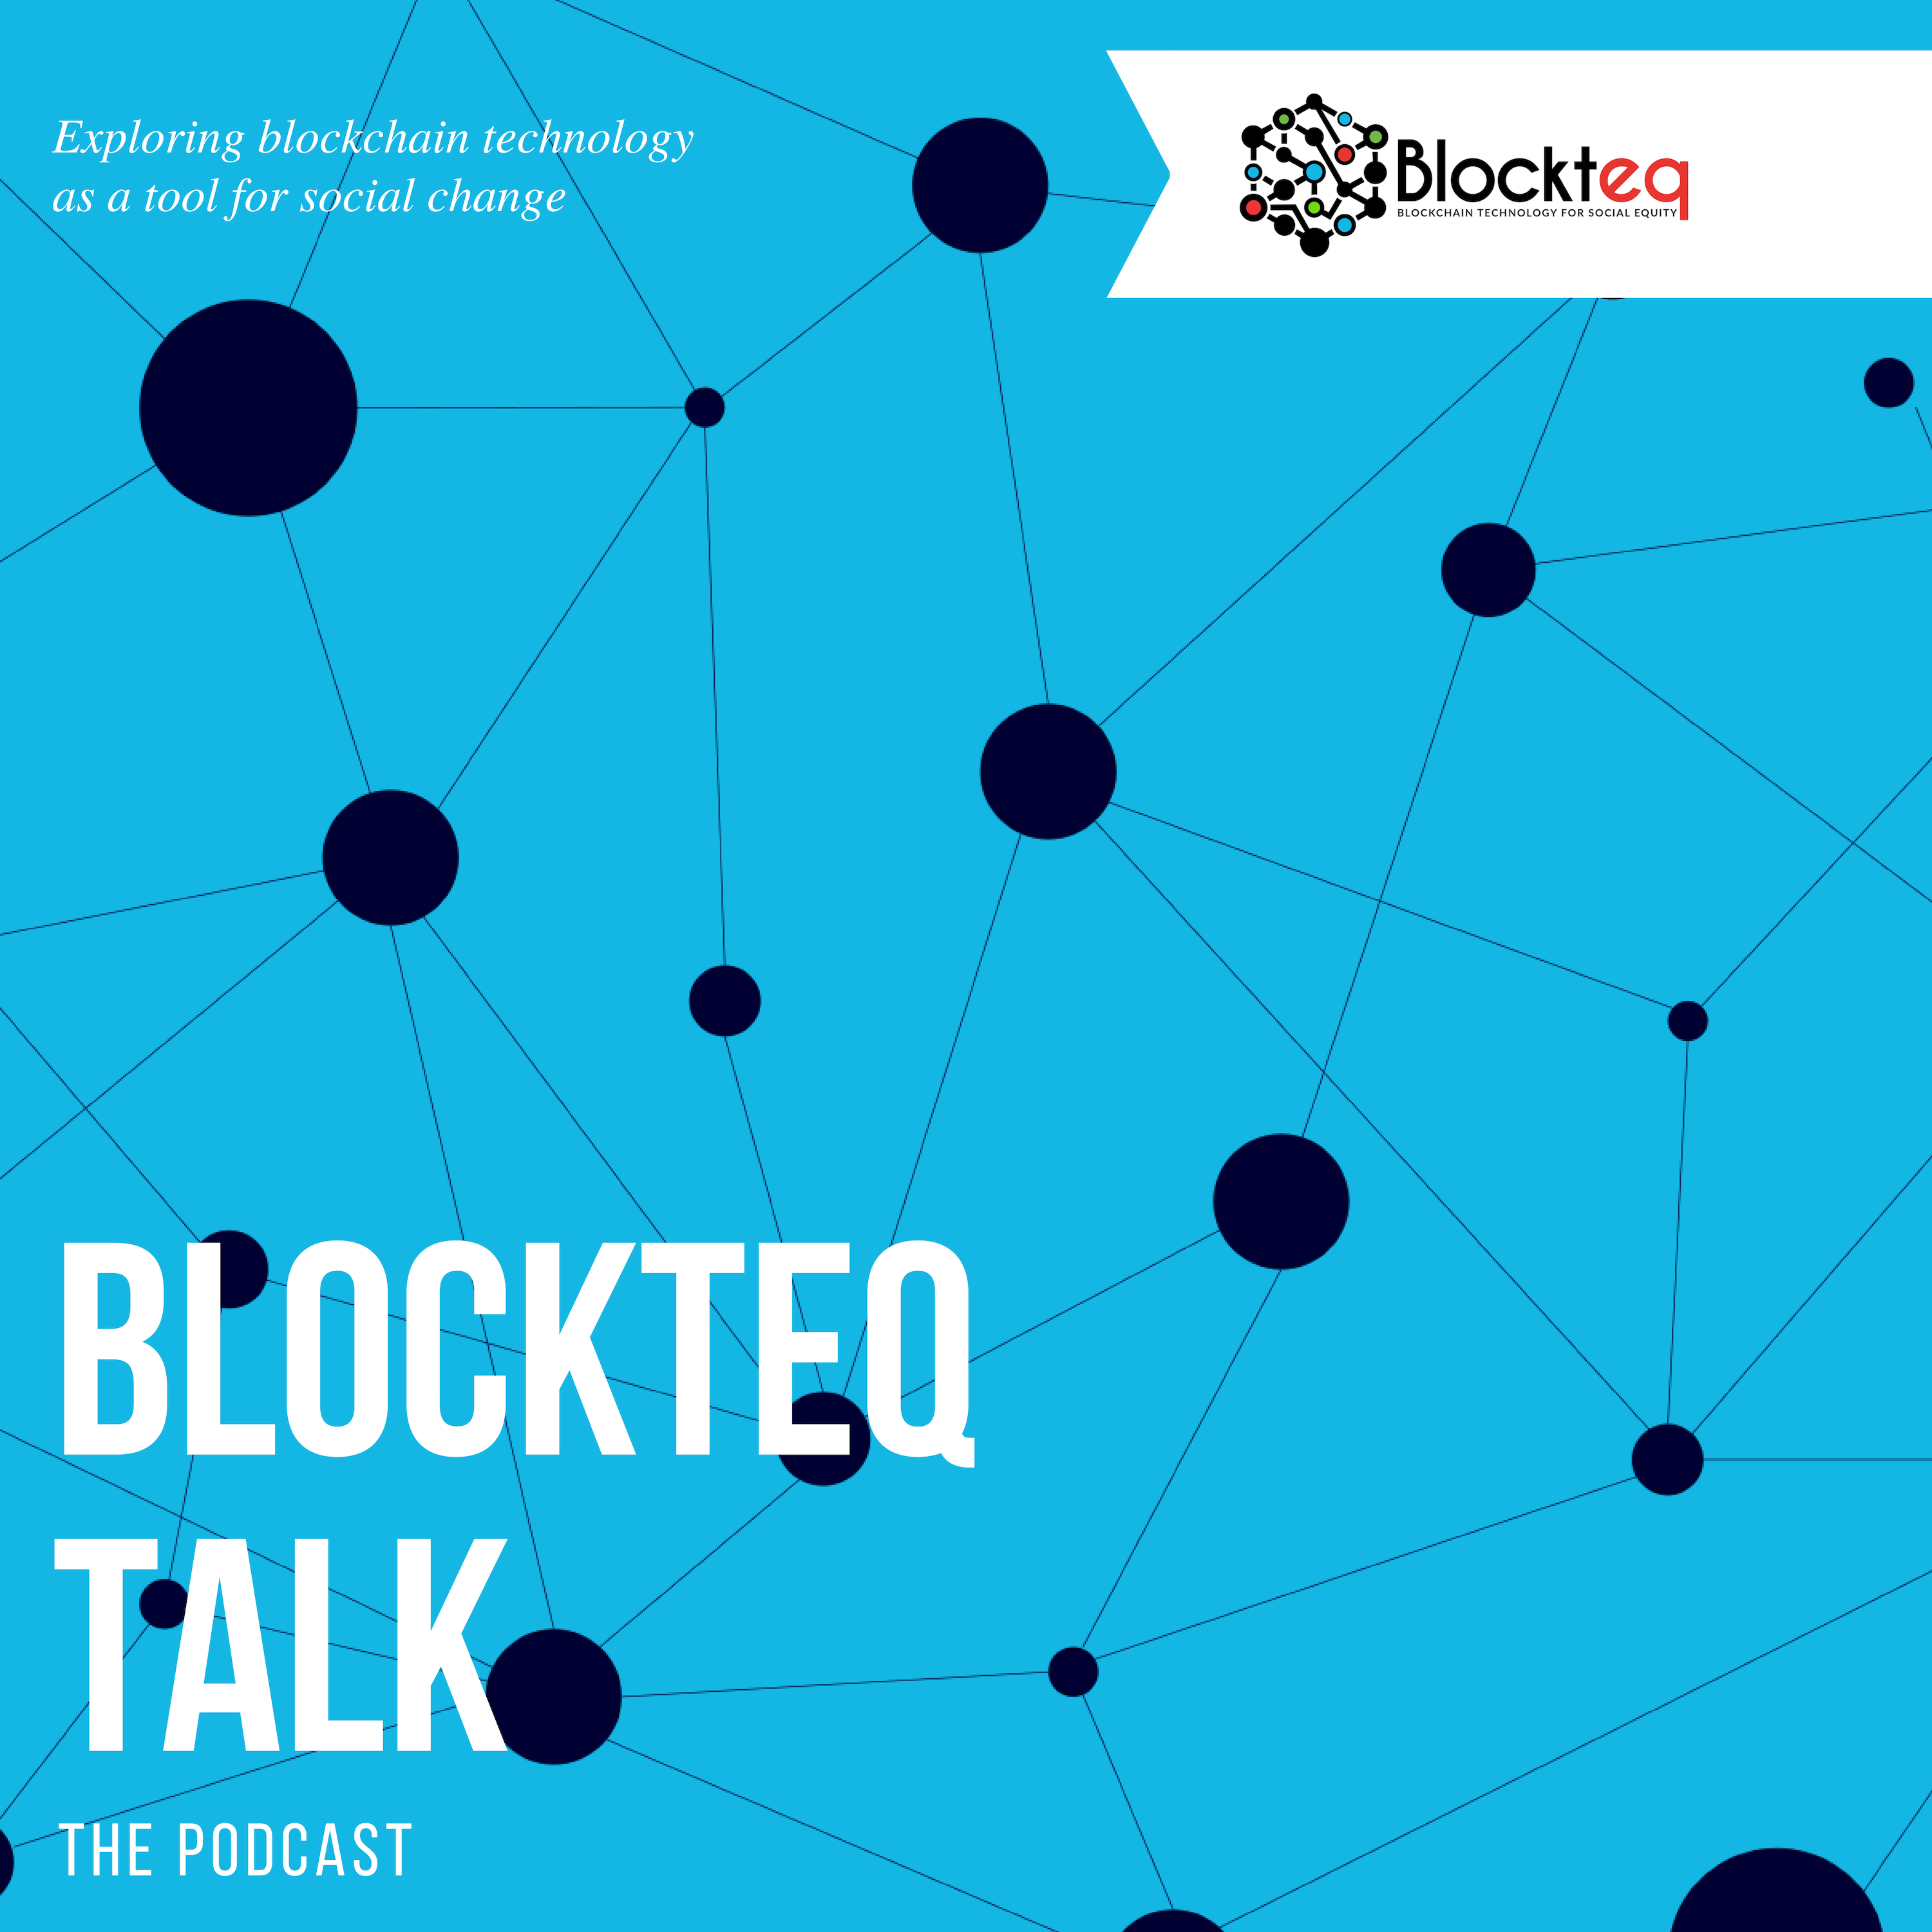 Blockteq Talk Bitcoin Podcast Cover Art